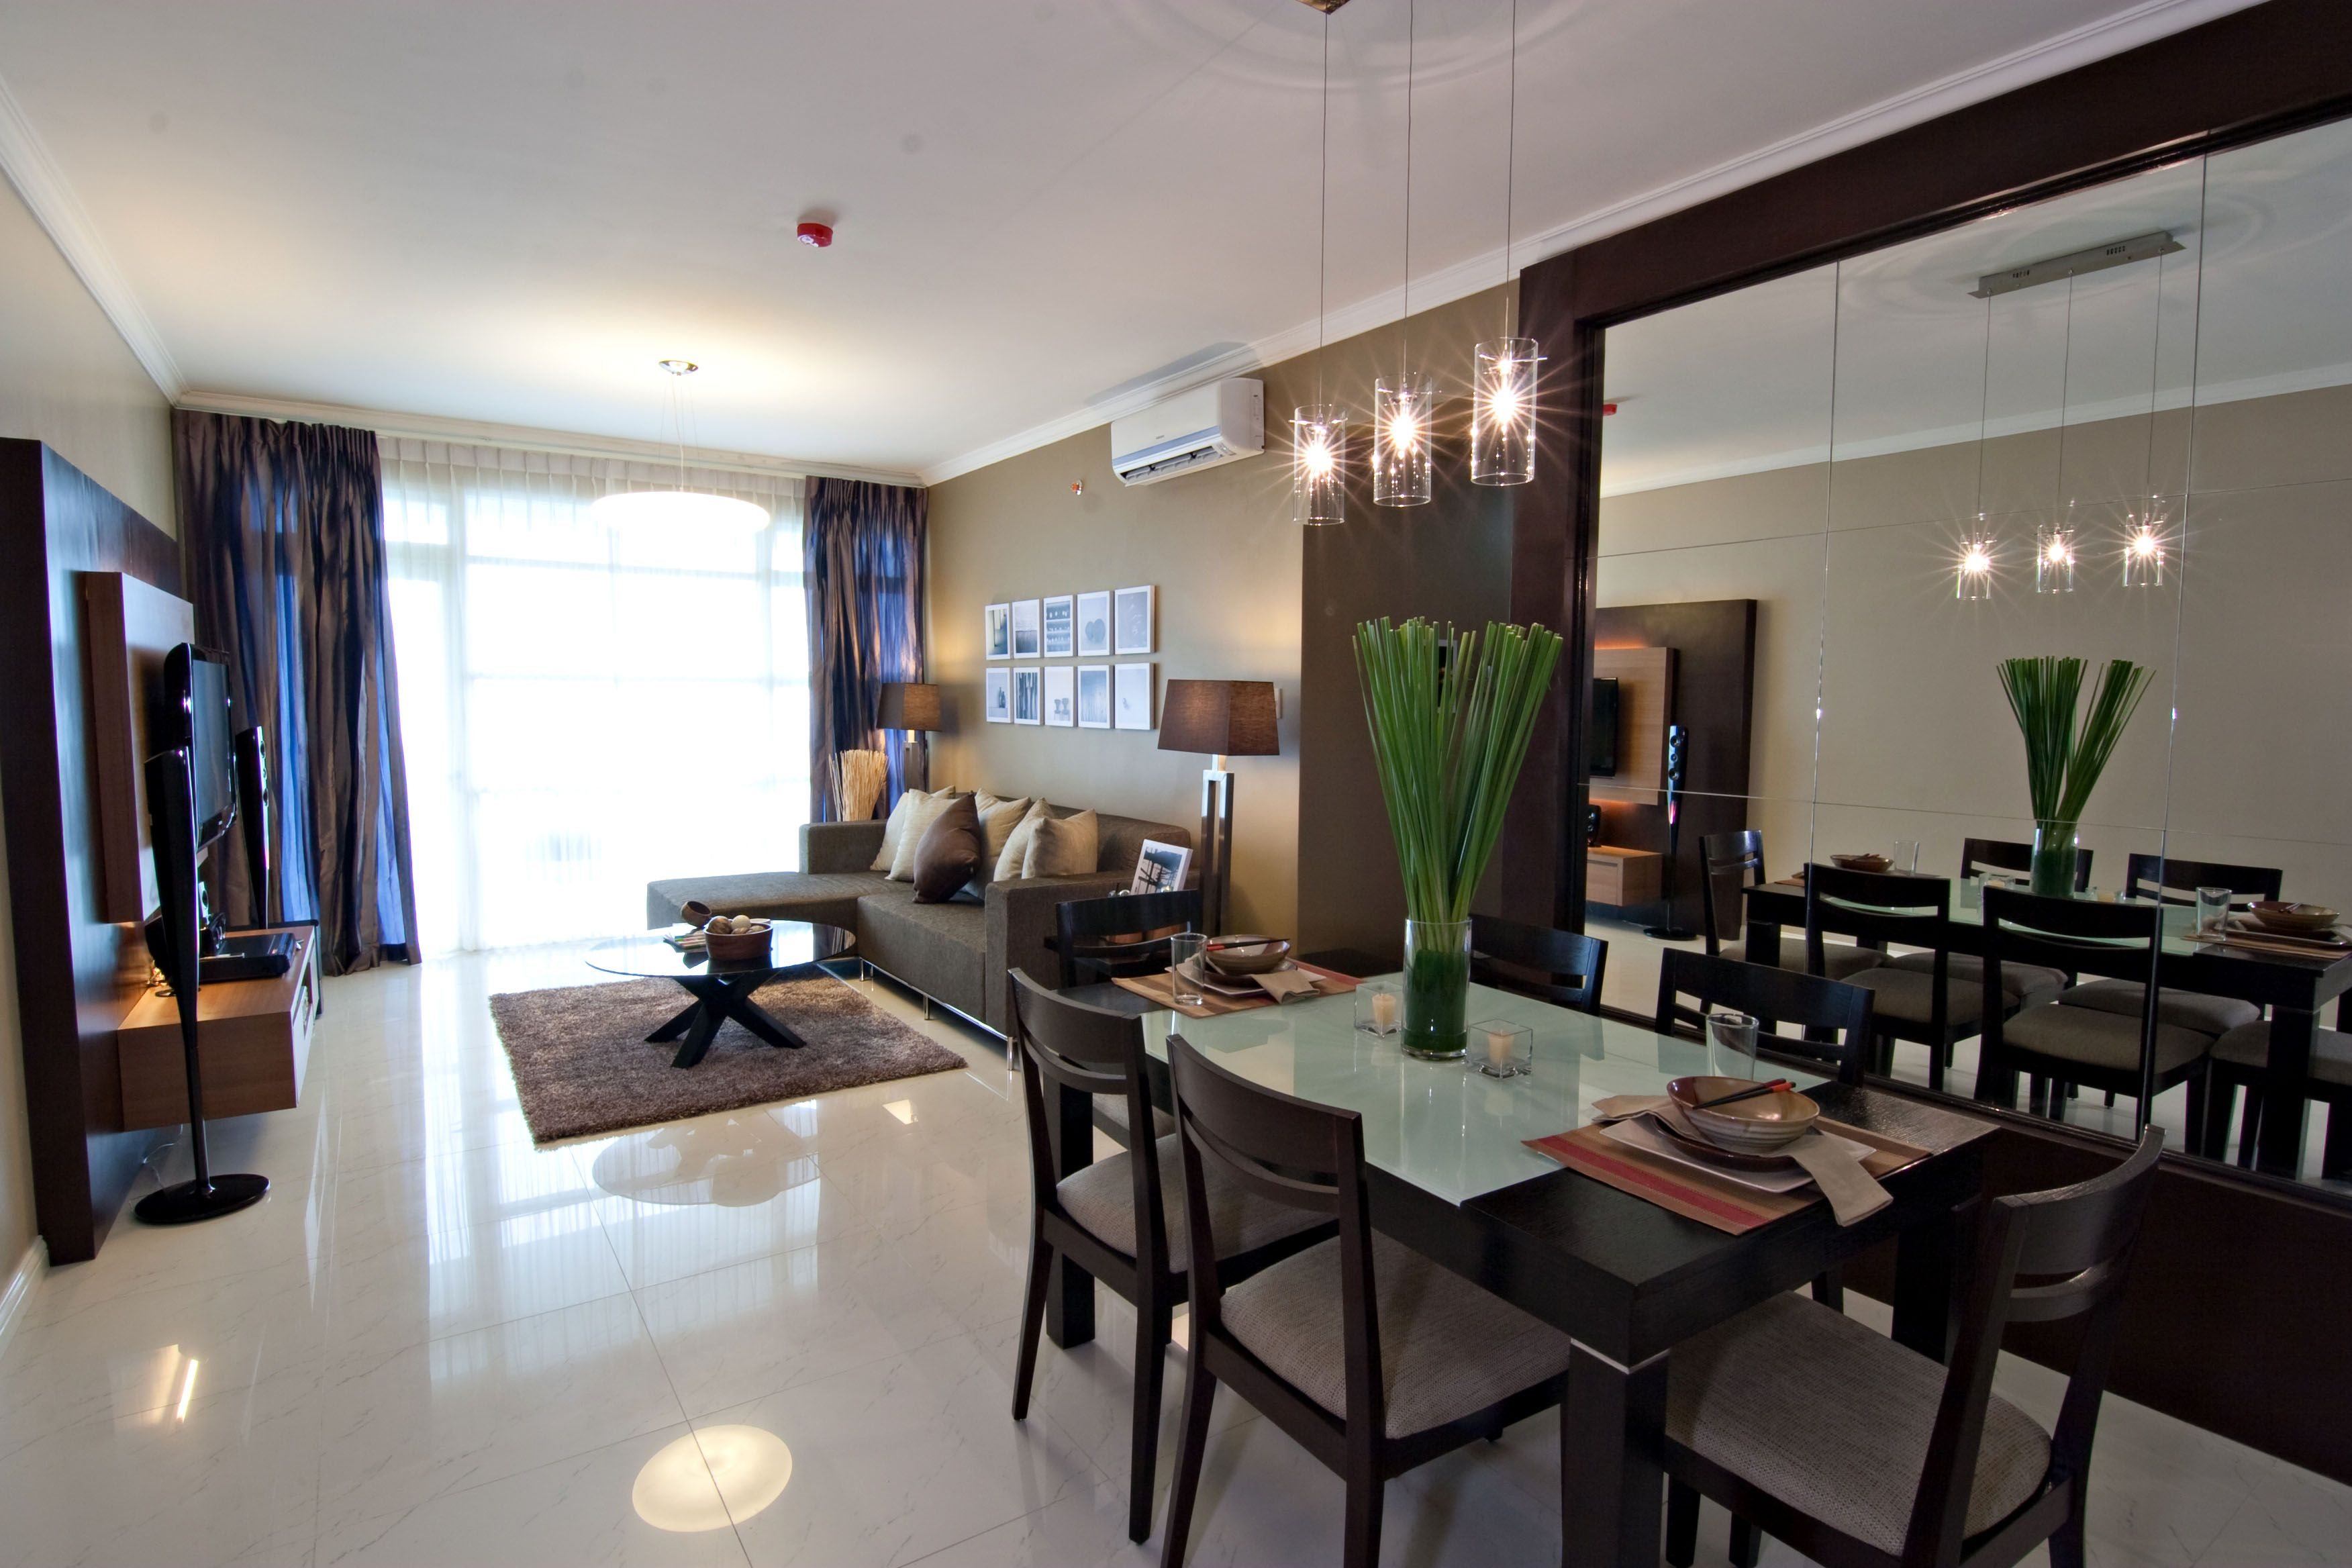 Citylights Garden Condominium By Adrian Del Monte At Coroflot Condo Interior DesignCondo DesignApartment InteriorHouse DesignZen Living RoomsDining